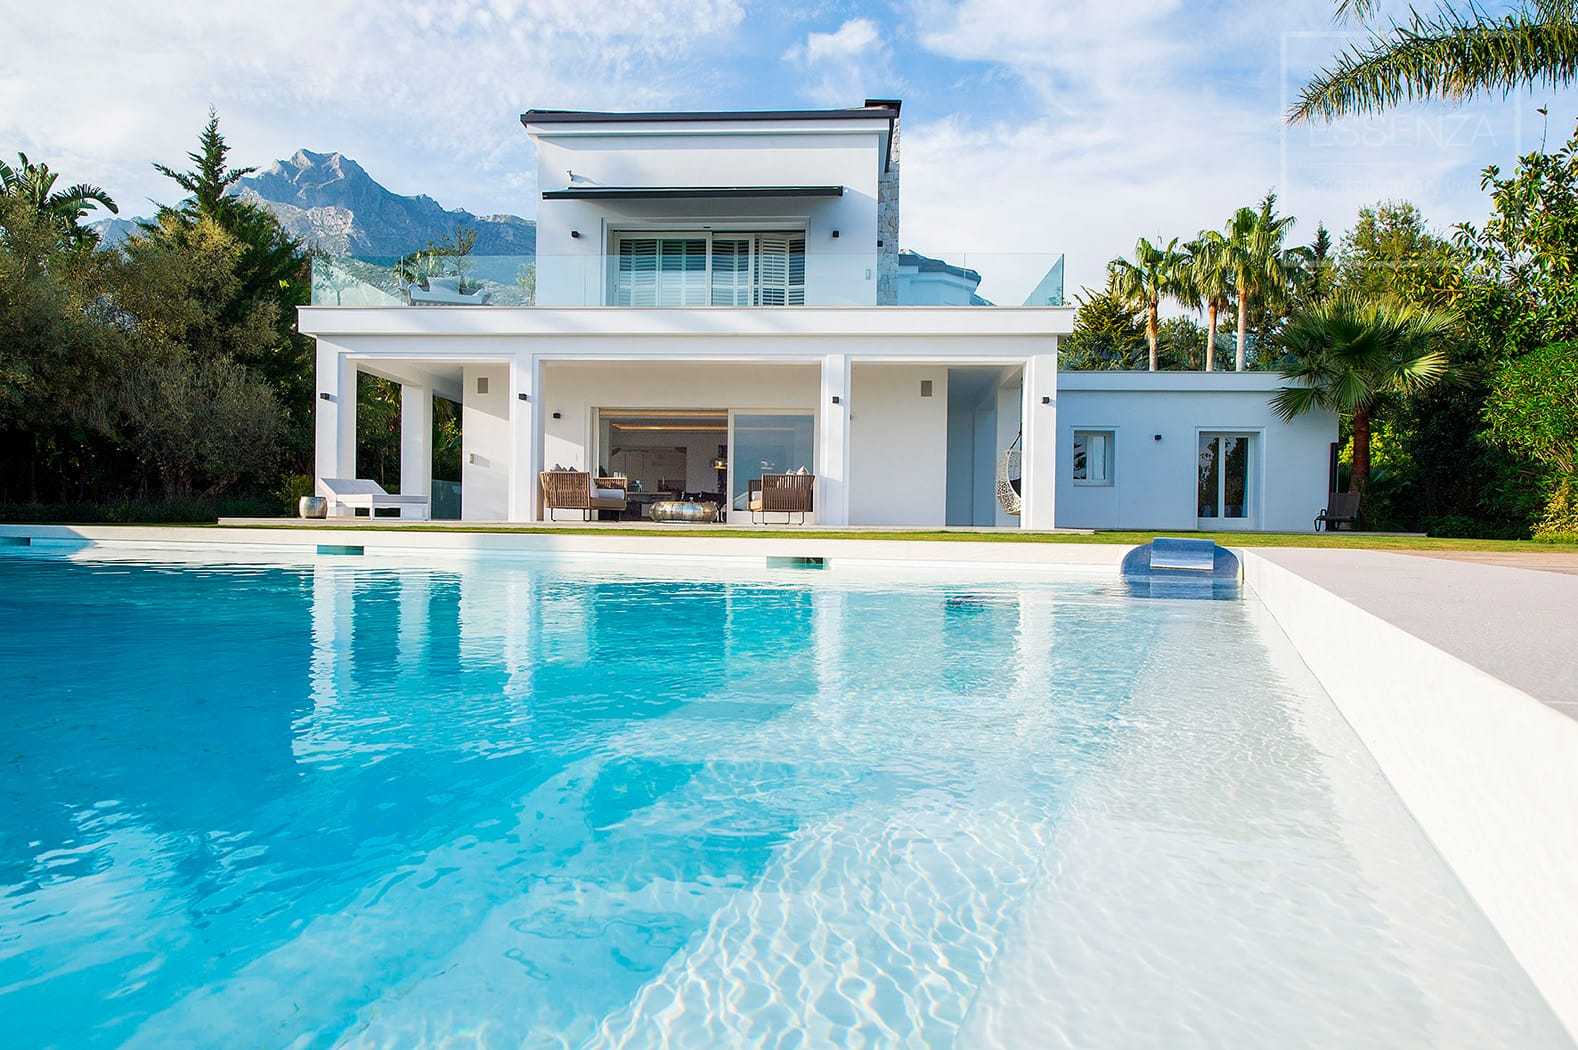 Sierra Blanca, A eyecatching transformation of a traditional, Spanish style villa into a modern looking property.